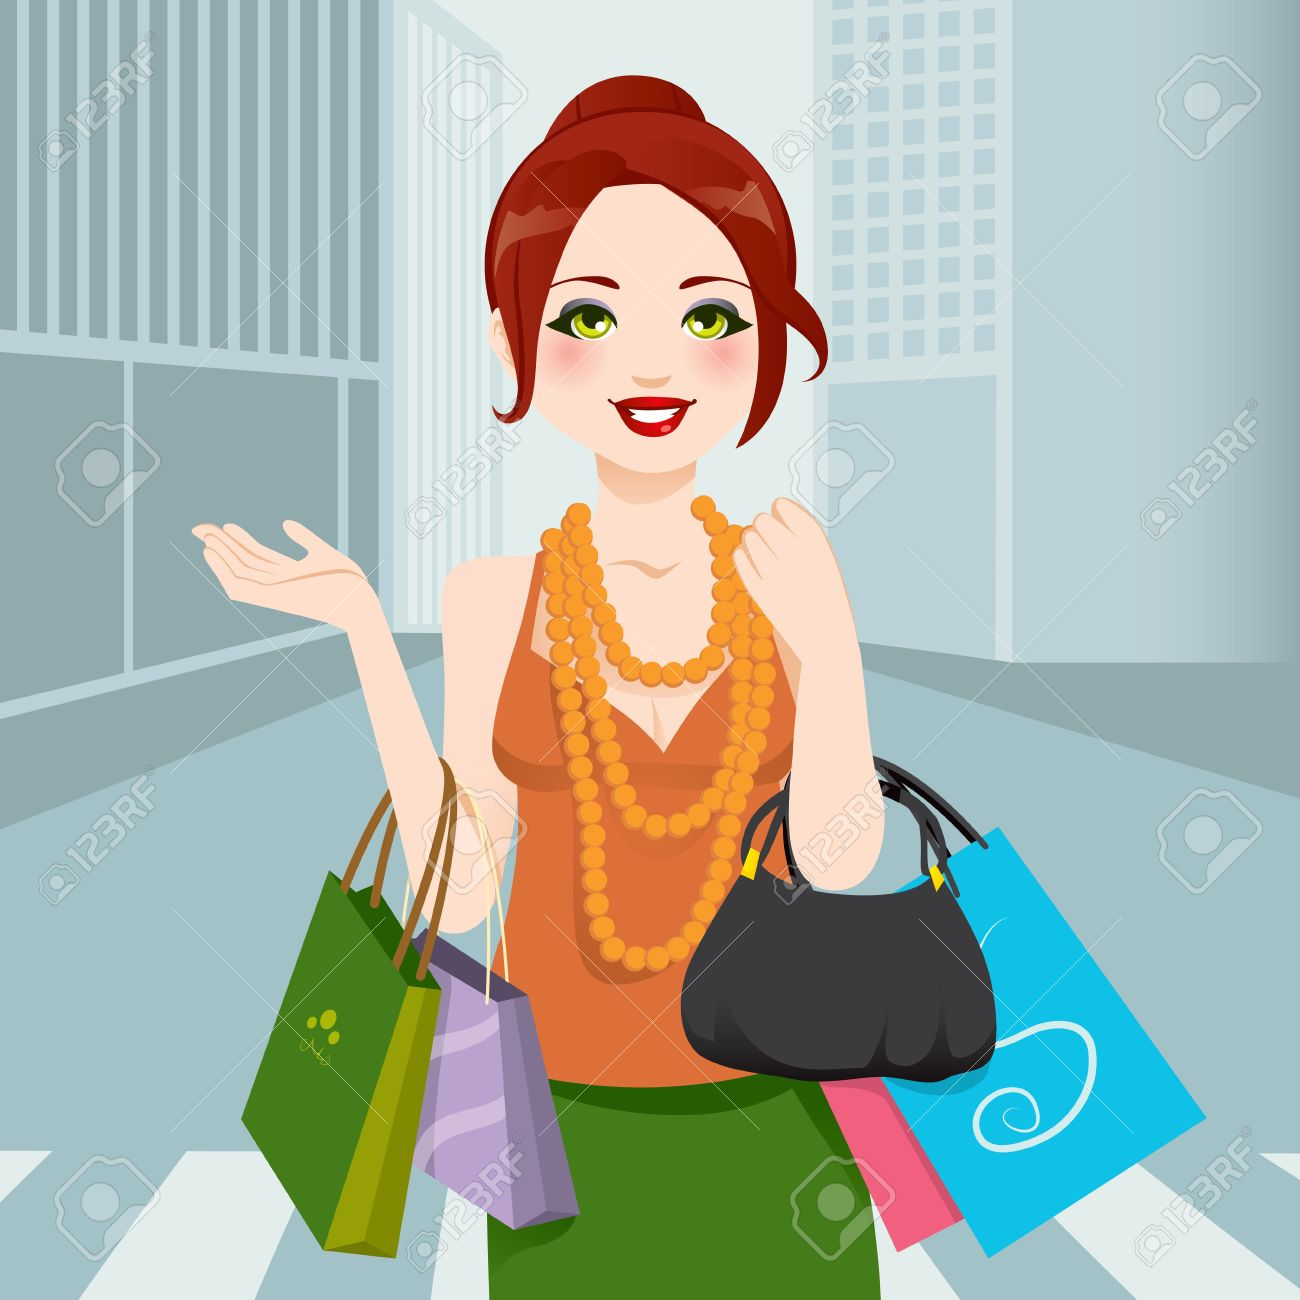 Beautiful chic fashion woman walking through city avenue with shopping bags and handbag Stock Vector - 13815453